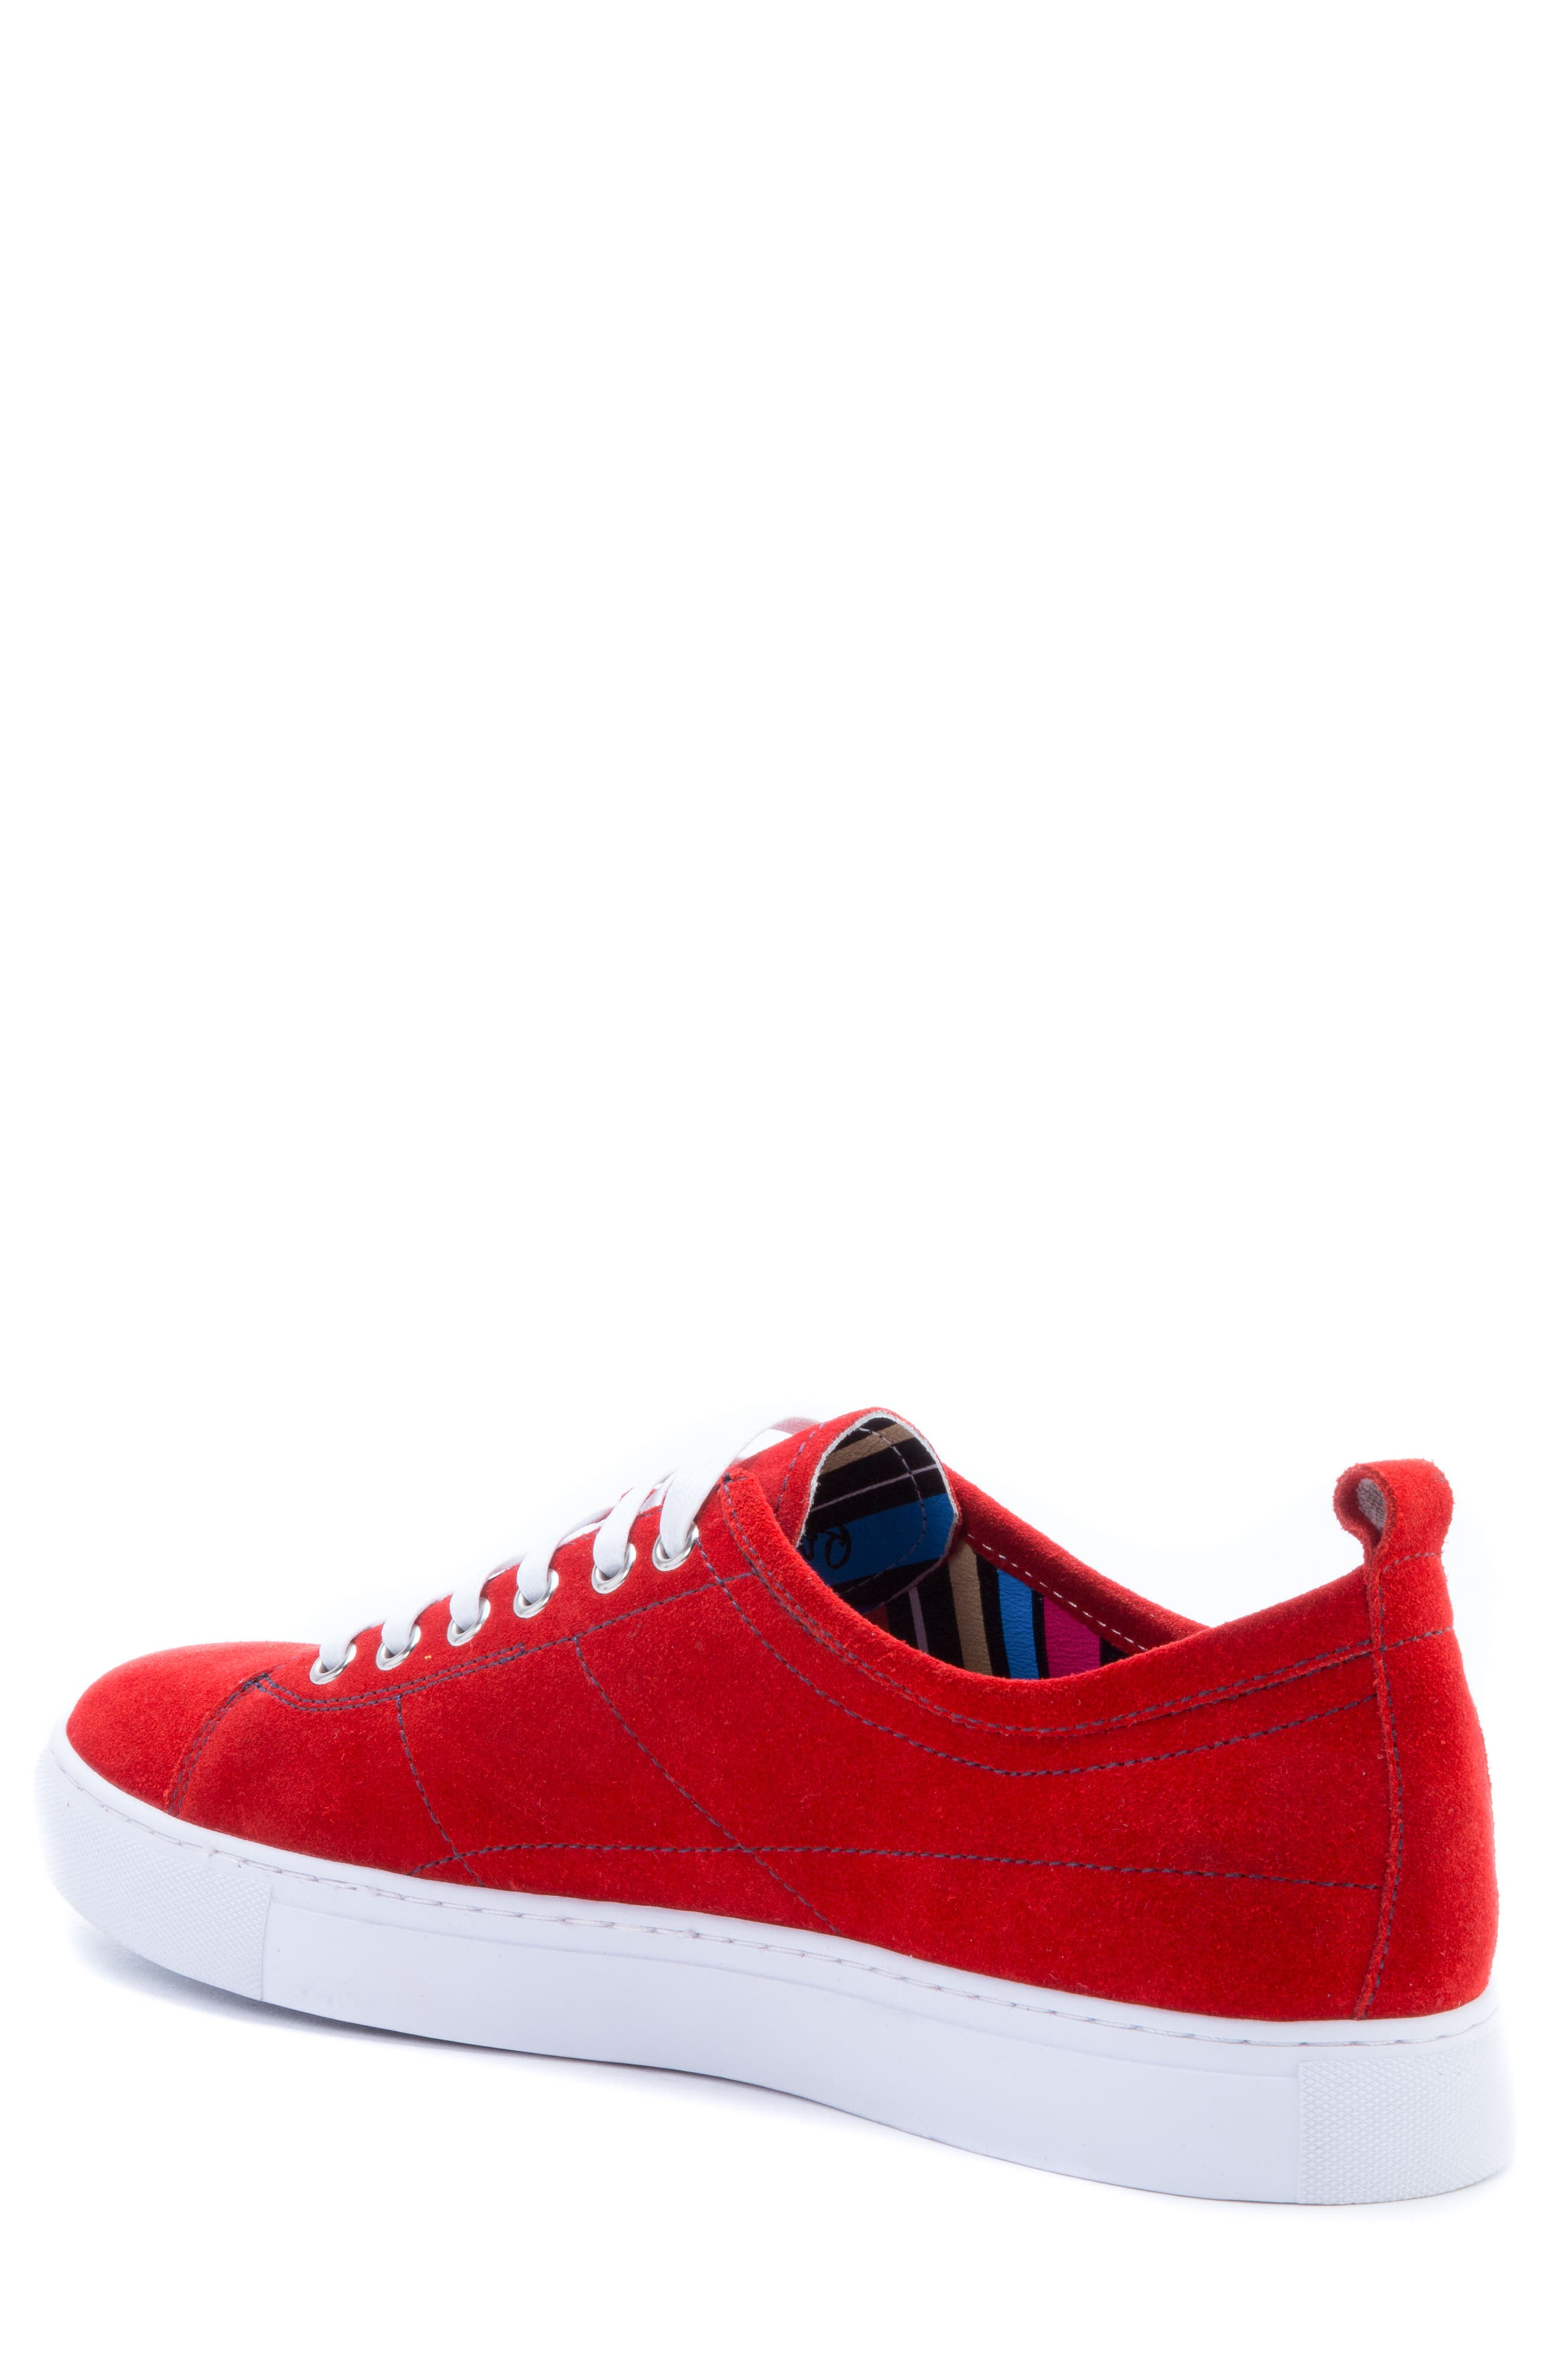 Ernesto Low Top Sneaker,                             Alternate thumbnail 2, color,                             Red Suede